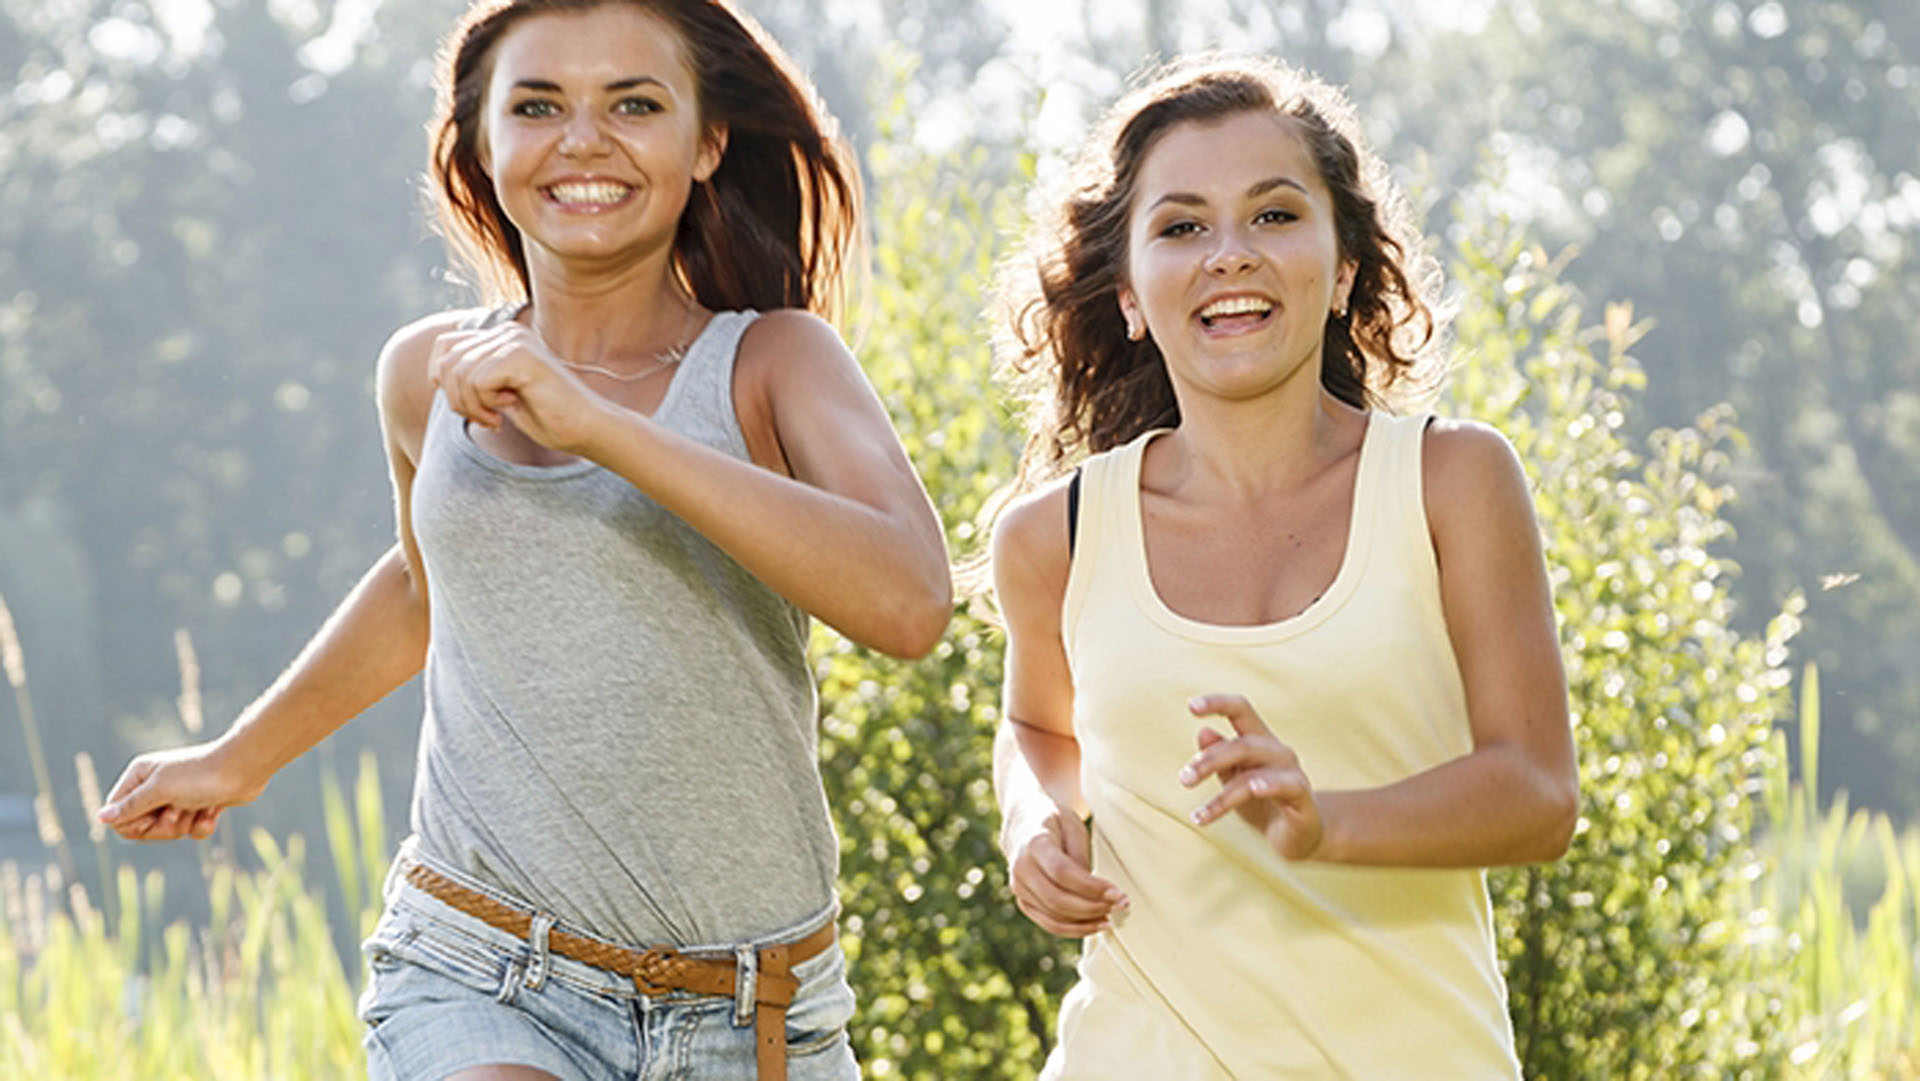 More Physical Activity Recommended For Young Aussies